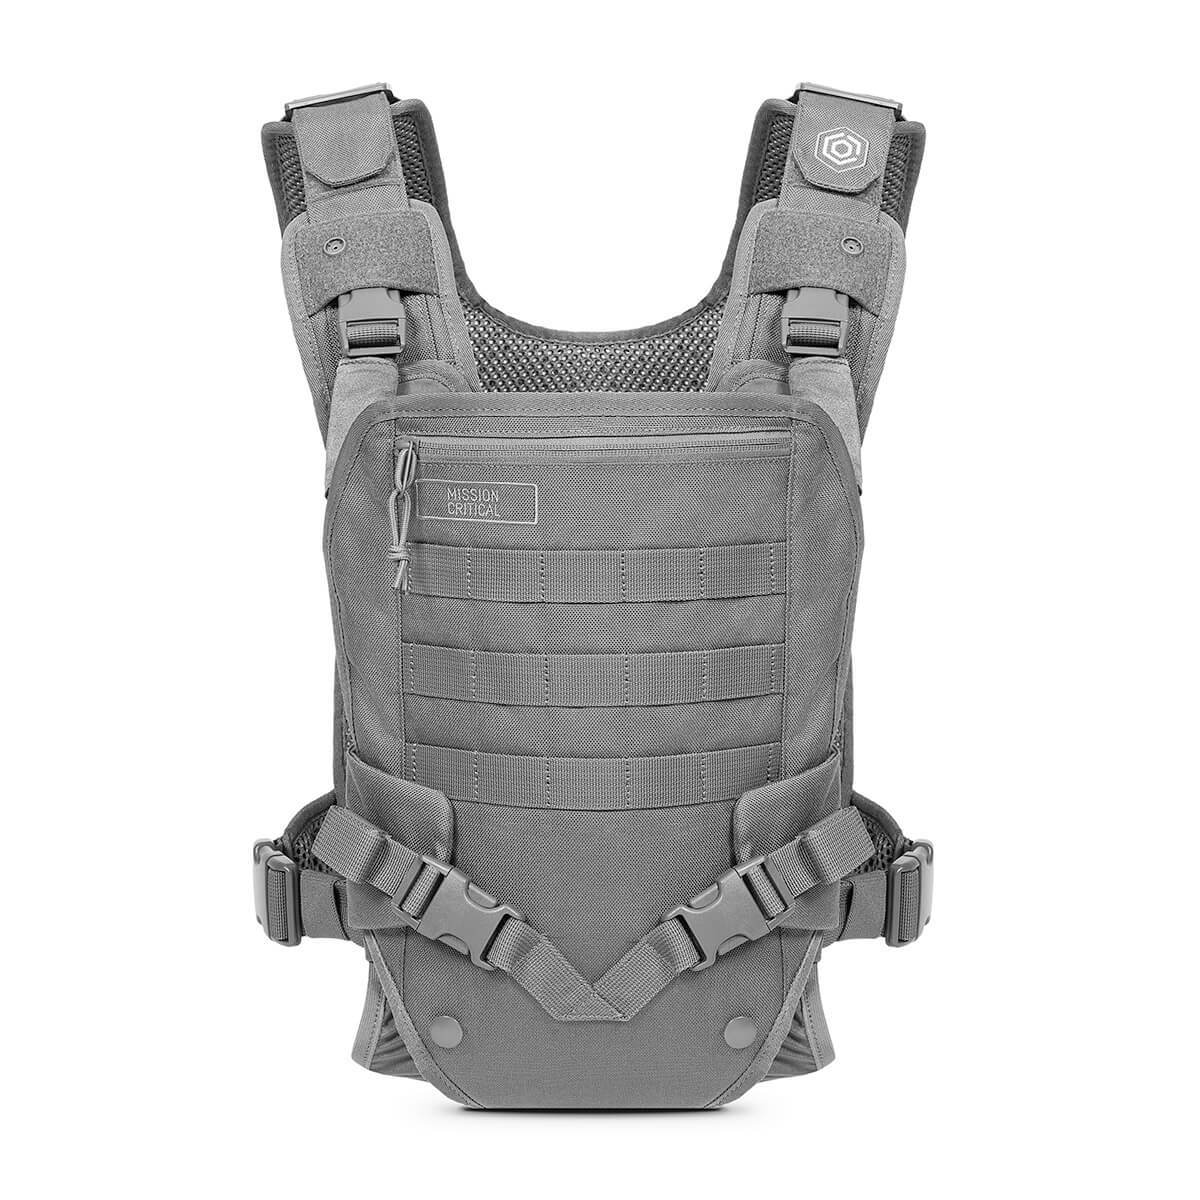 S.01 Baby Carrier Balance Kit